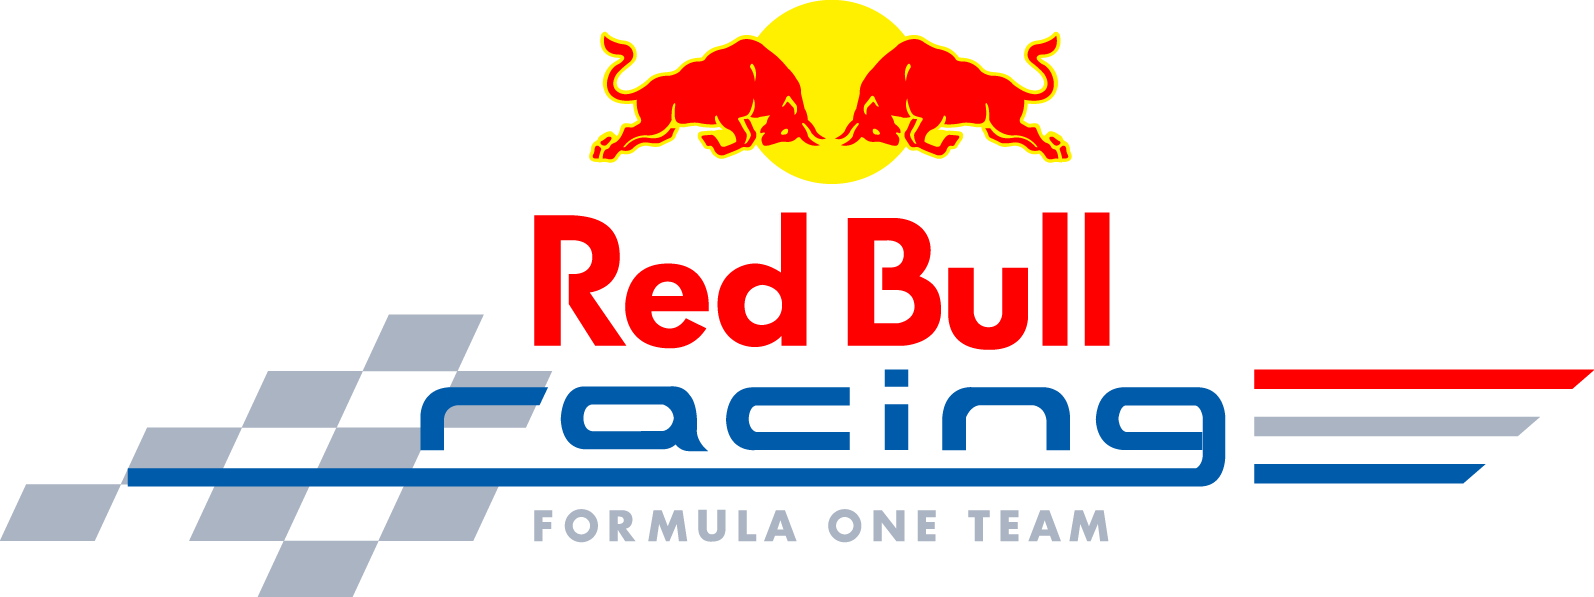 Logos Pinterest F1 Team Racing Sport Bull Red qcU1gwXq